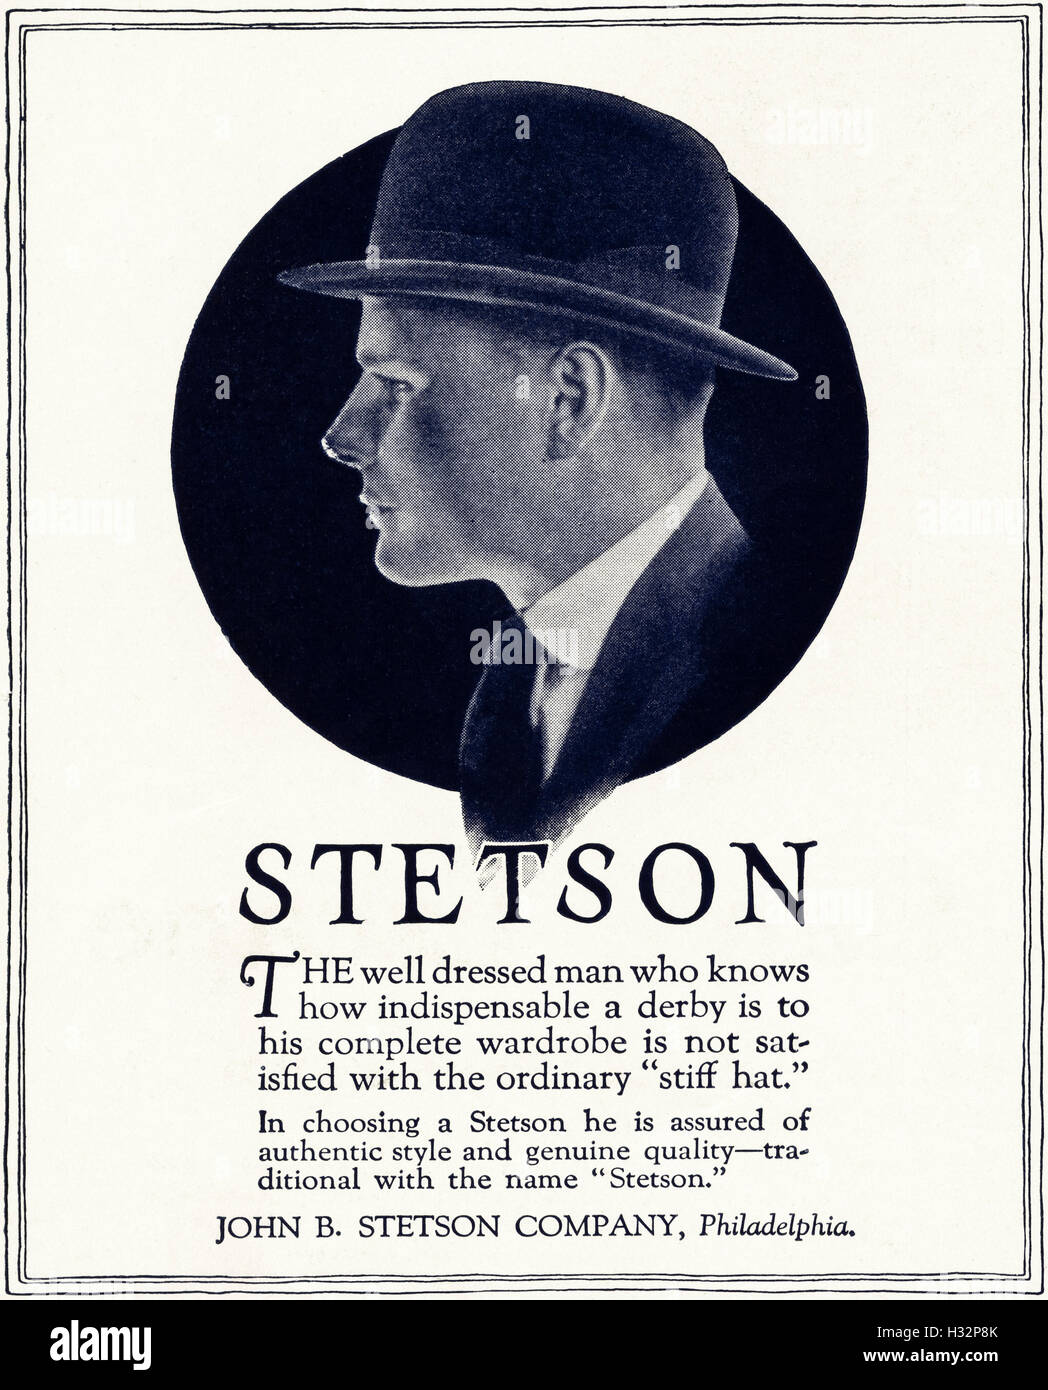 1920 advert from original old vintage American magazine 1920s advertisement  advertising the Derby men s hat by John B Stetson Company of Philadelphia  ... eb64f593a057